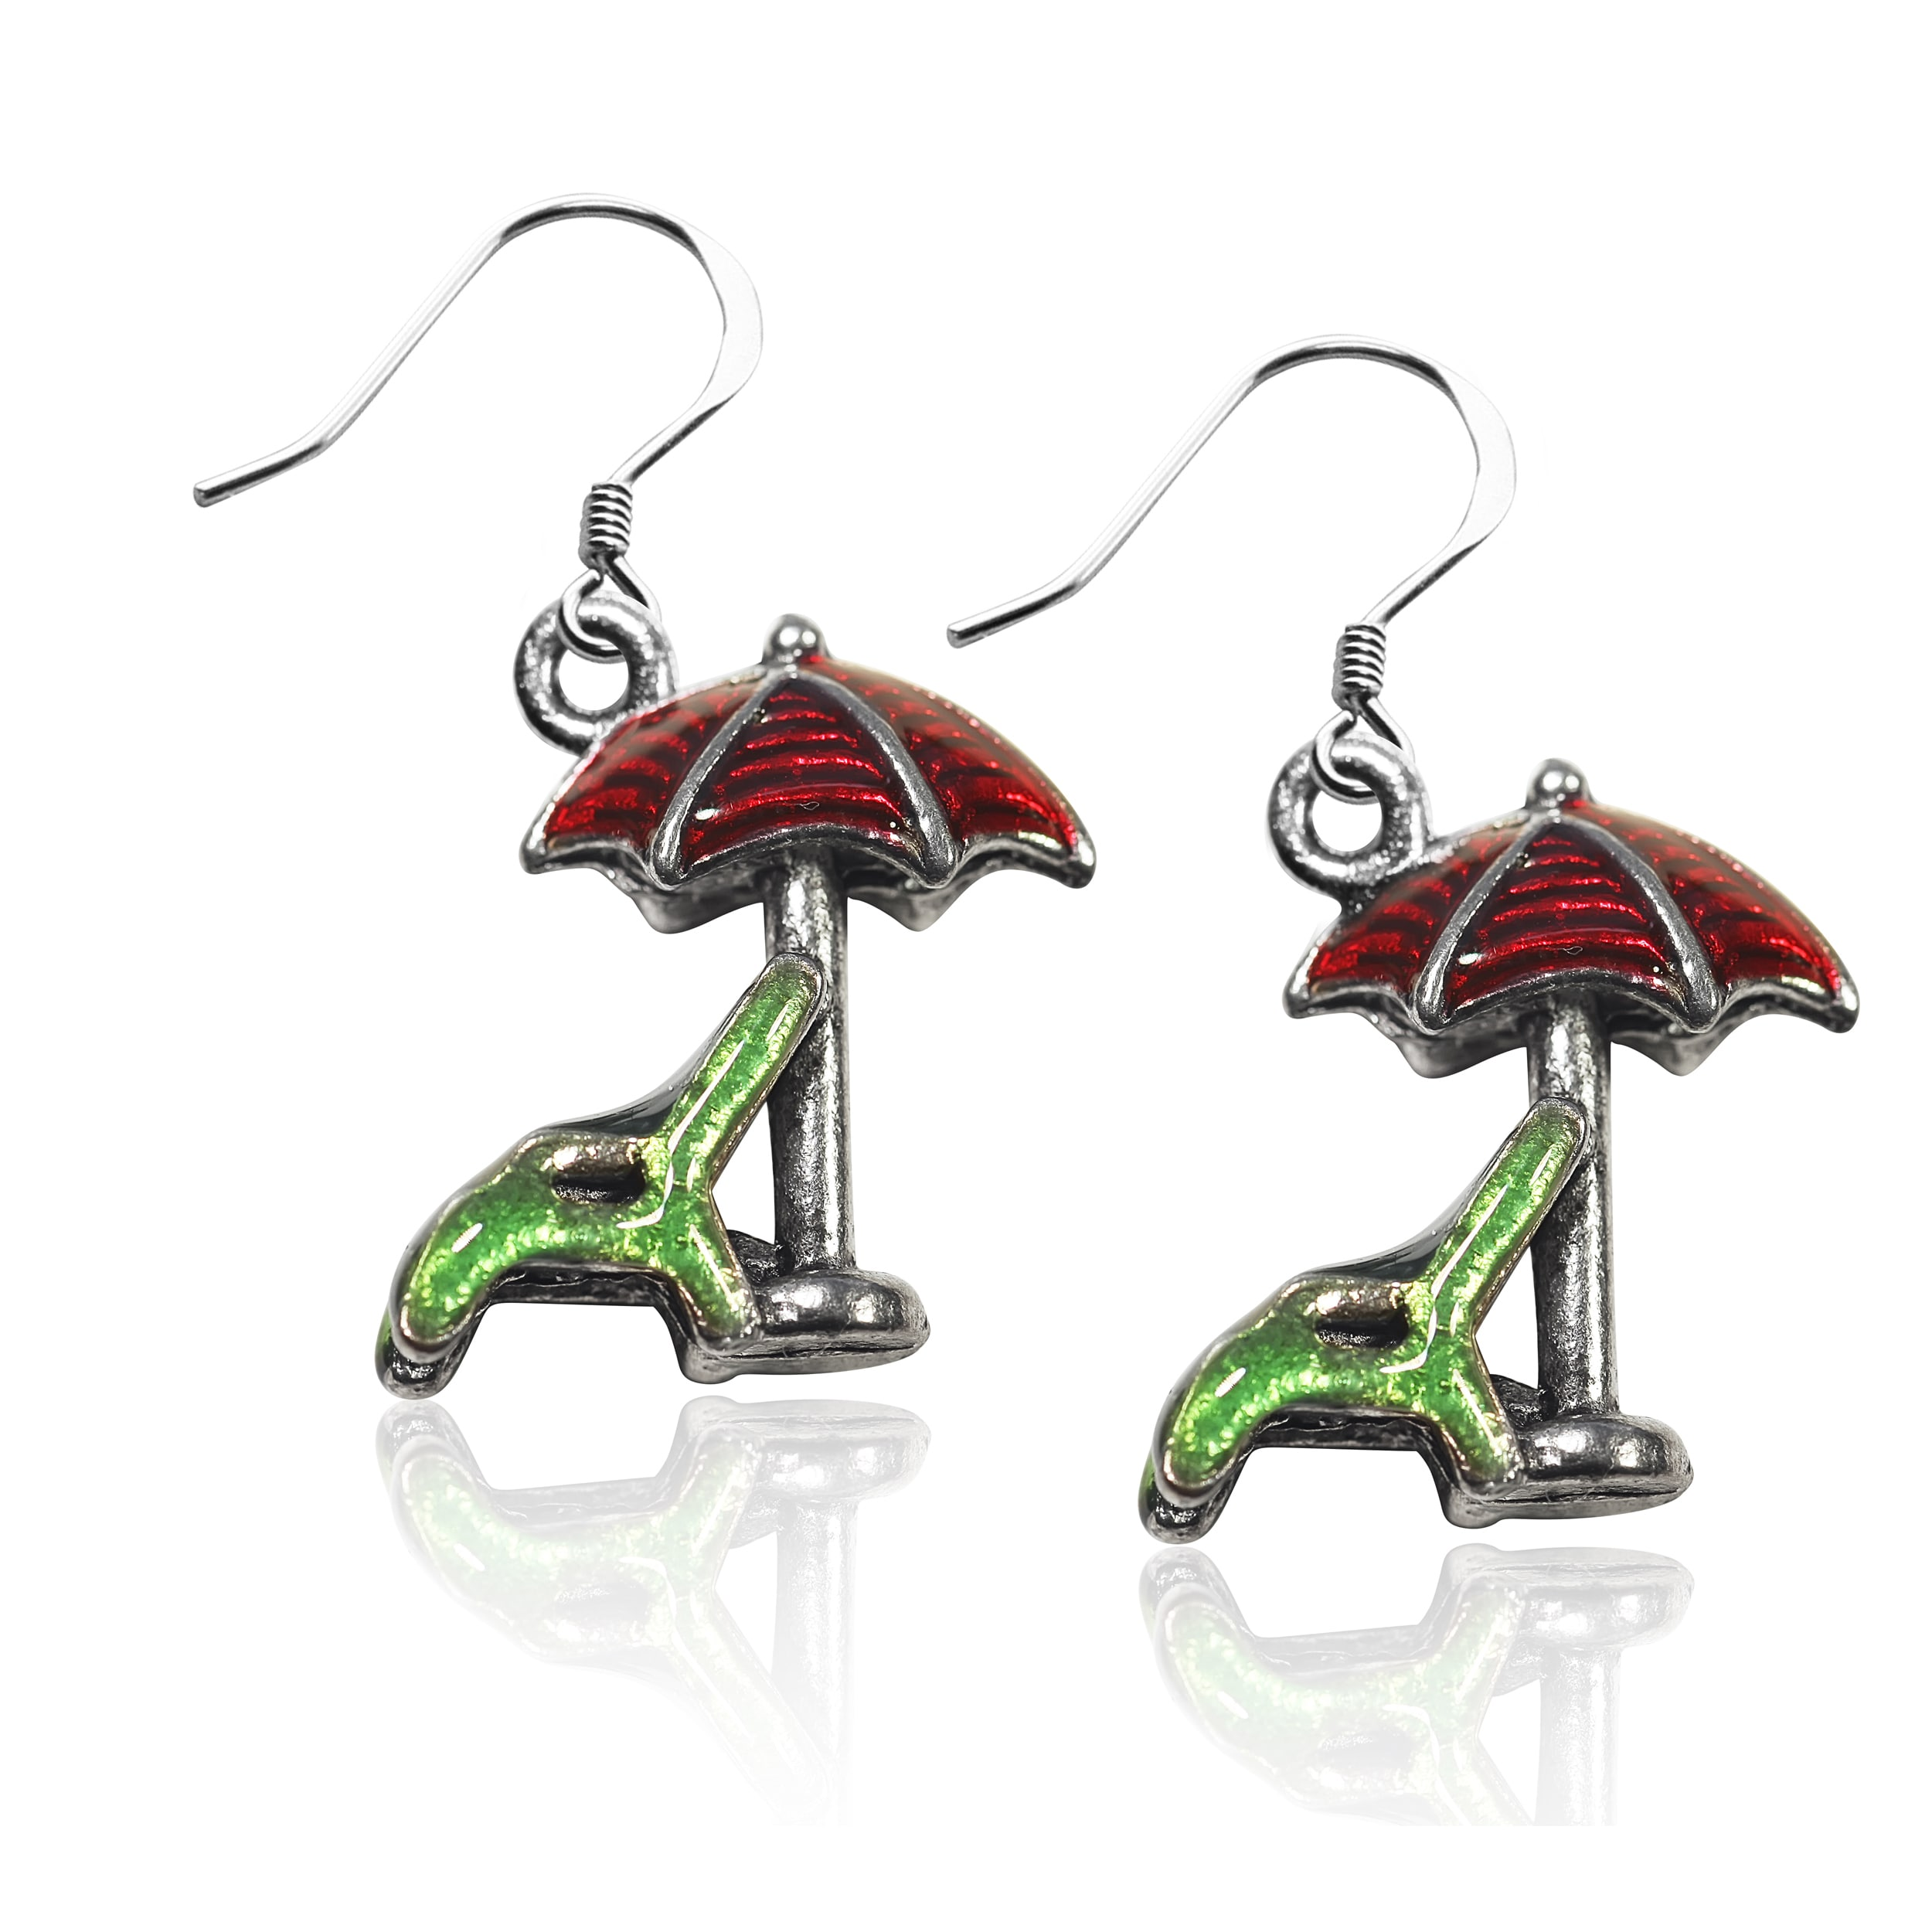 Whimsical Sterling Silver Beach Chair and Umbrella Charm ...